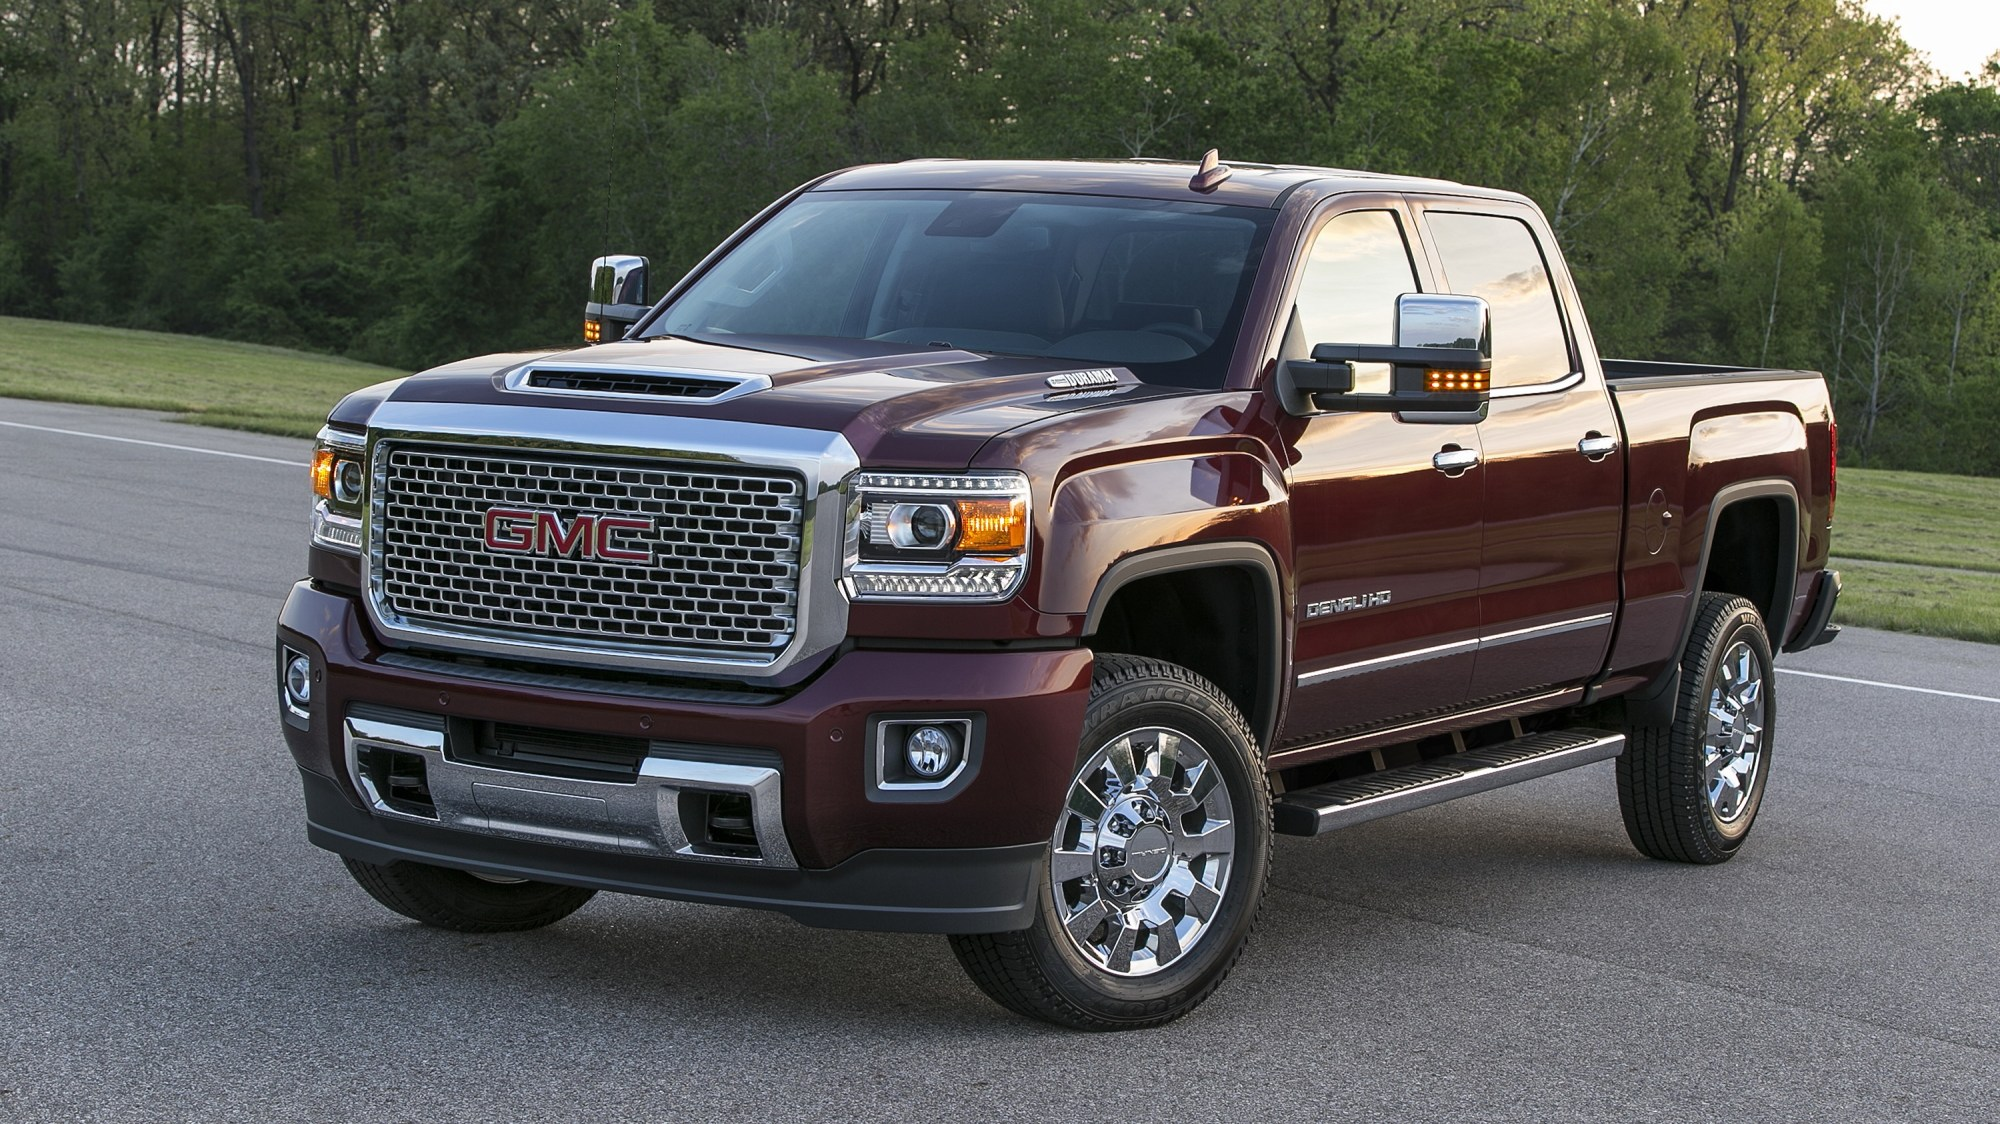 hight resolution of gmc is slashing up to 4 500 off the gmc sierra hd in october 2018